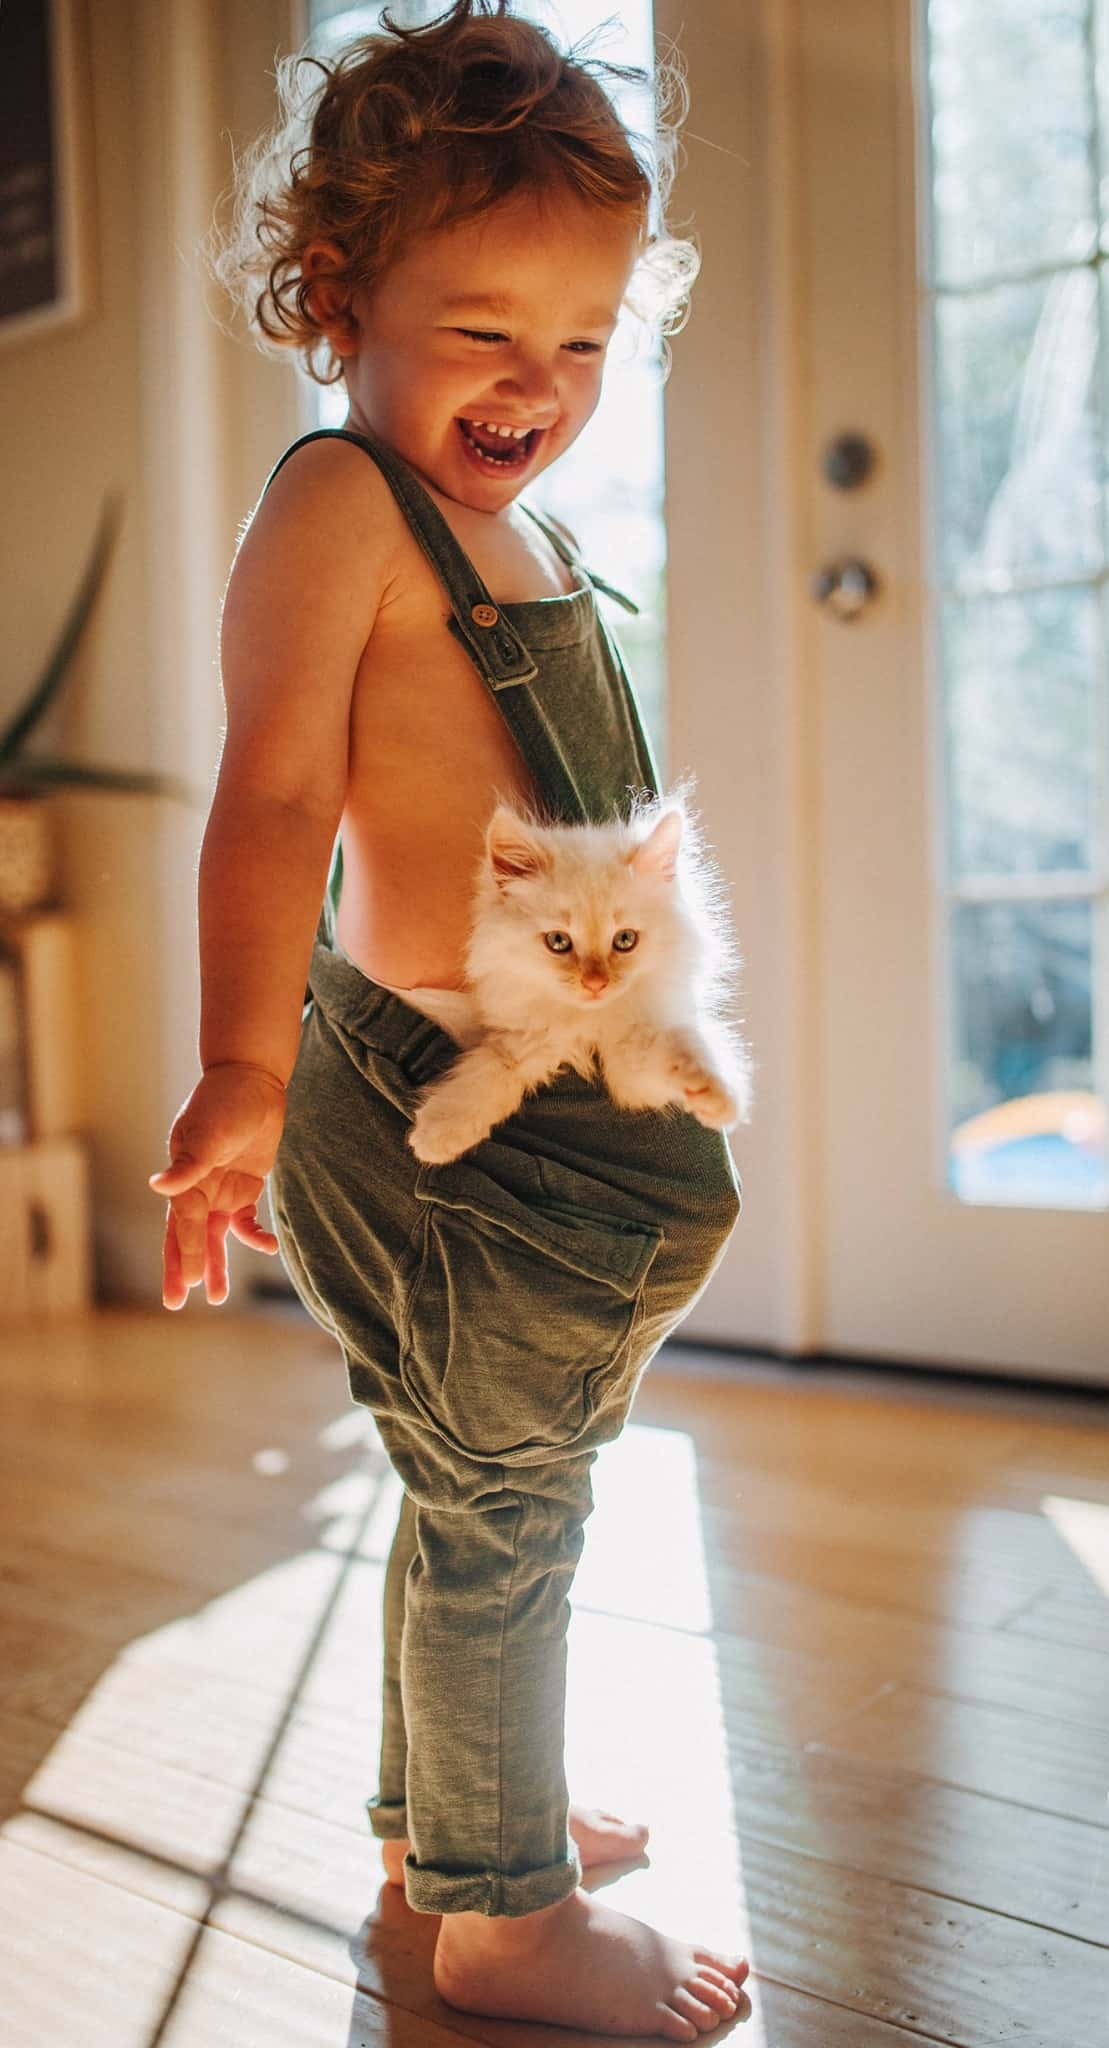 14 Cute Kitten Pictures That Will Put A Smile On Your Face